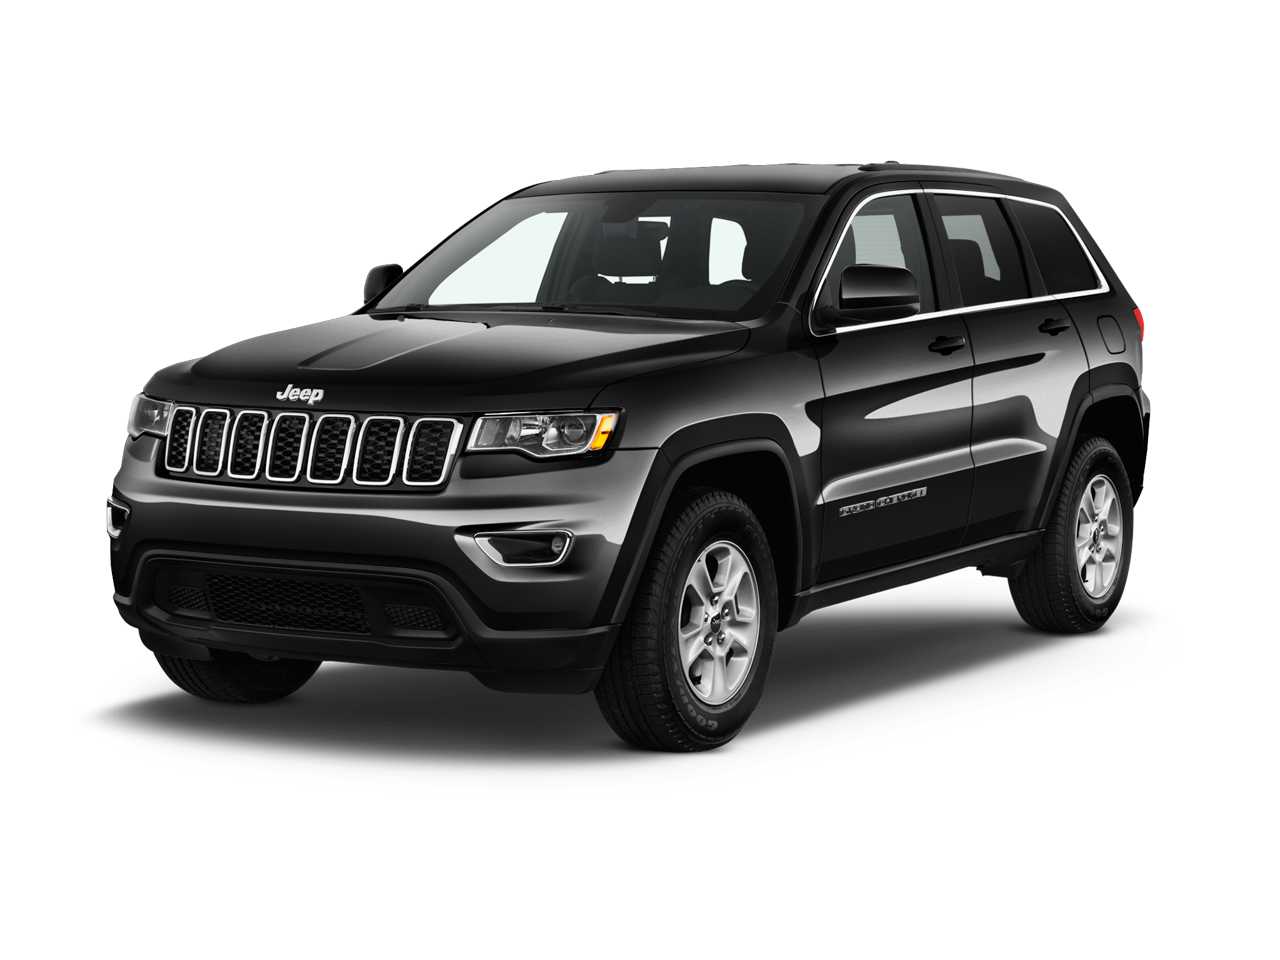 new 2017 jeep grand cherokee laredo near milwaukee wi russ darrow. Black Bedroom Furniture Sets. Home Design Ideas